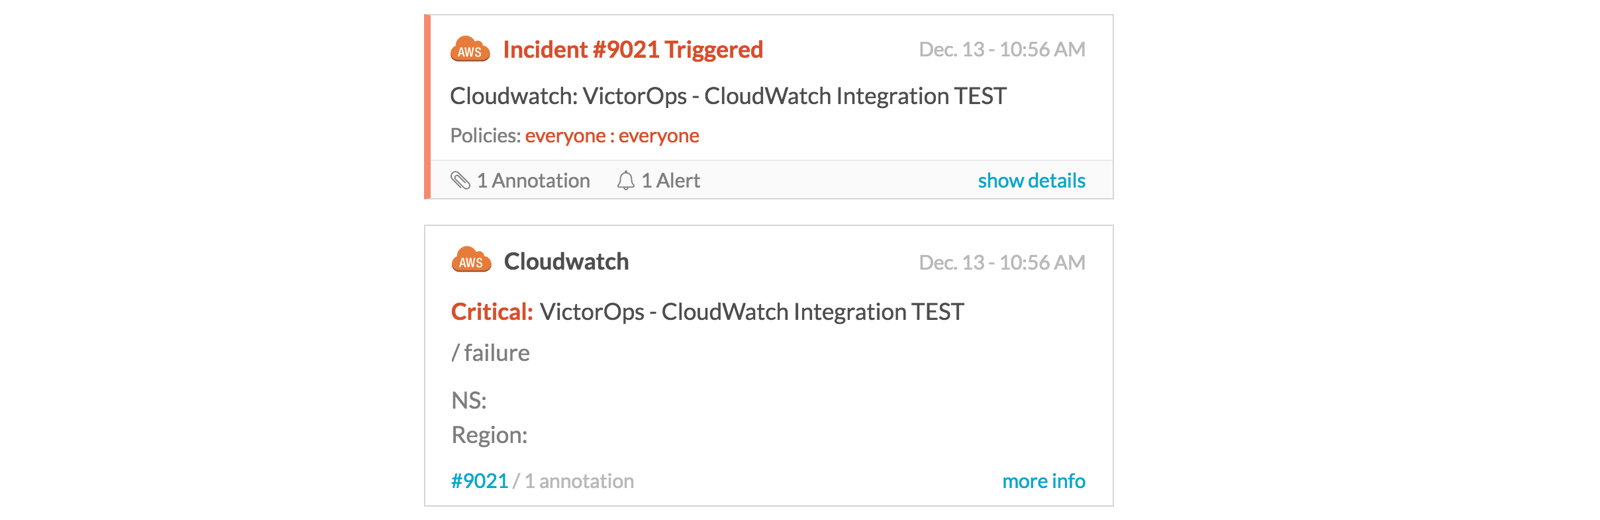 VictorOps Cloudwatch incident creation example